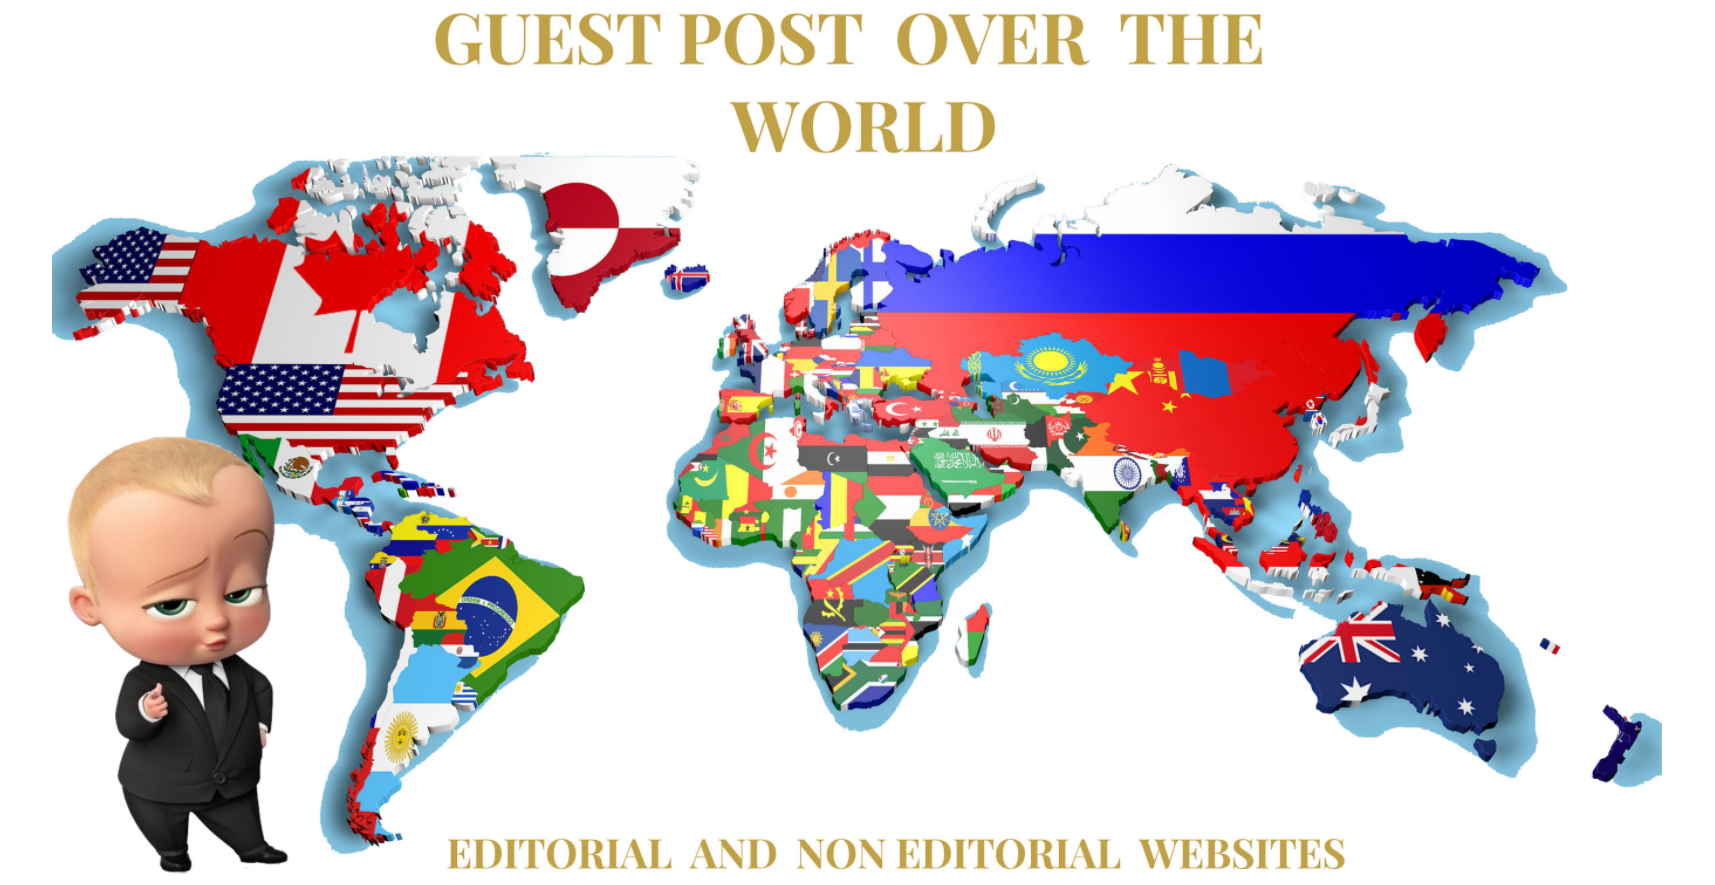 Do guest post over the world on editorial and non editorial sites